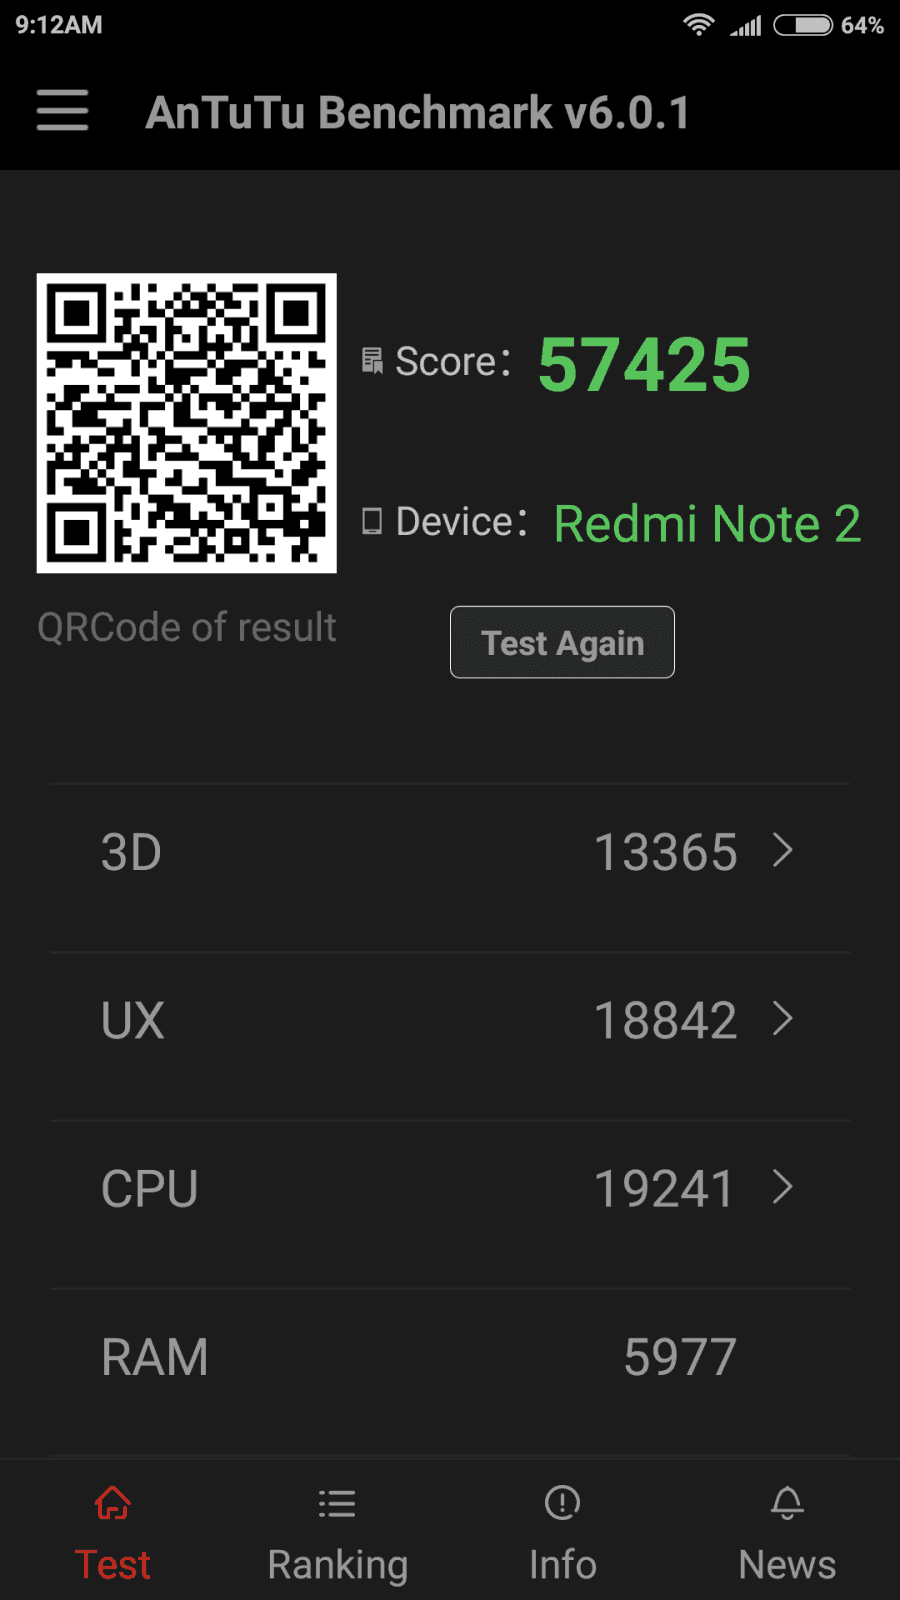 antutu benchmark- Redmi Note 2 performance